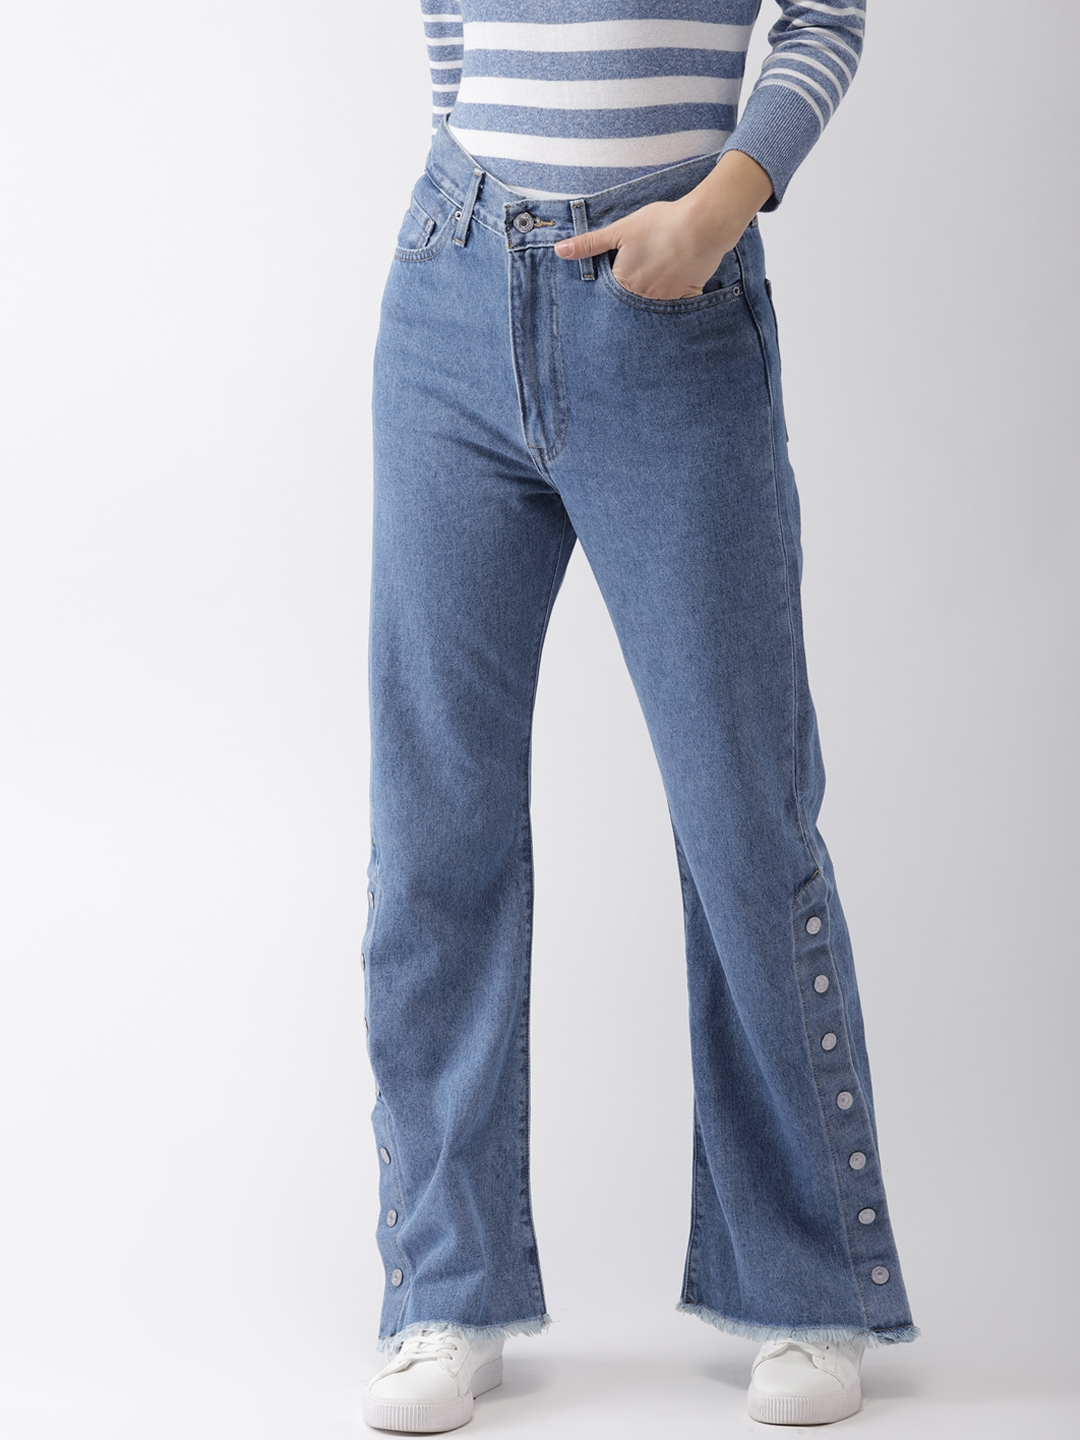 b20037f6a1201 Buy Levis Women Blue Ribcage Split Flare Bootcut High Rise Clean ...